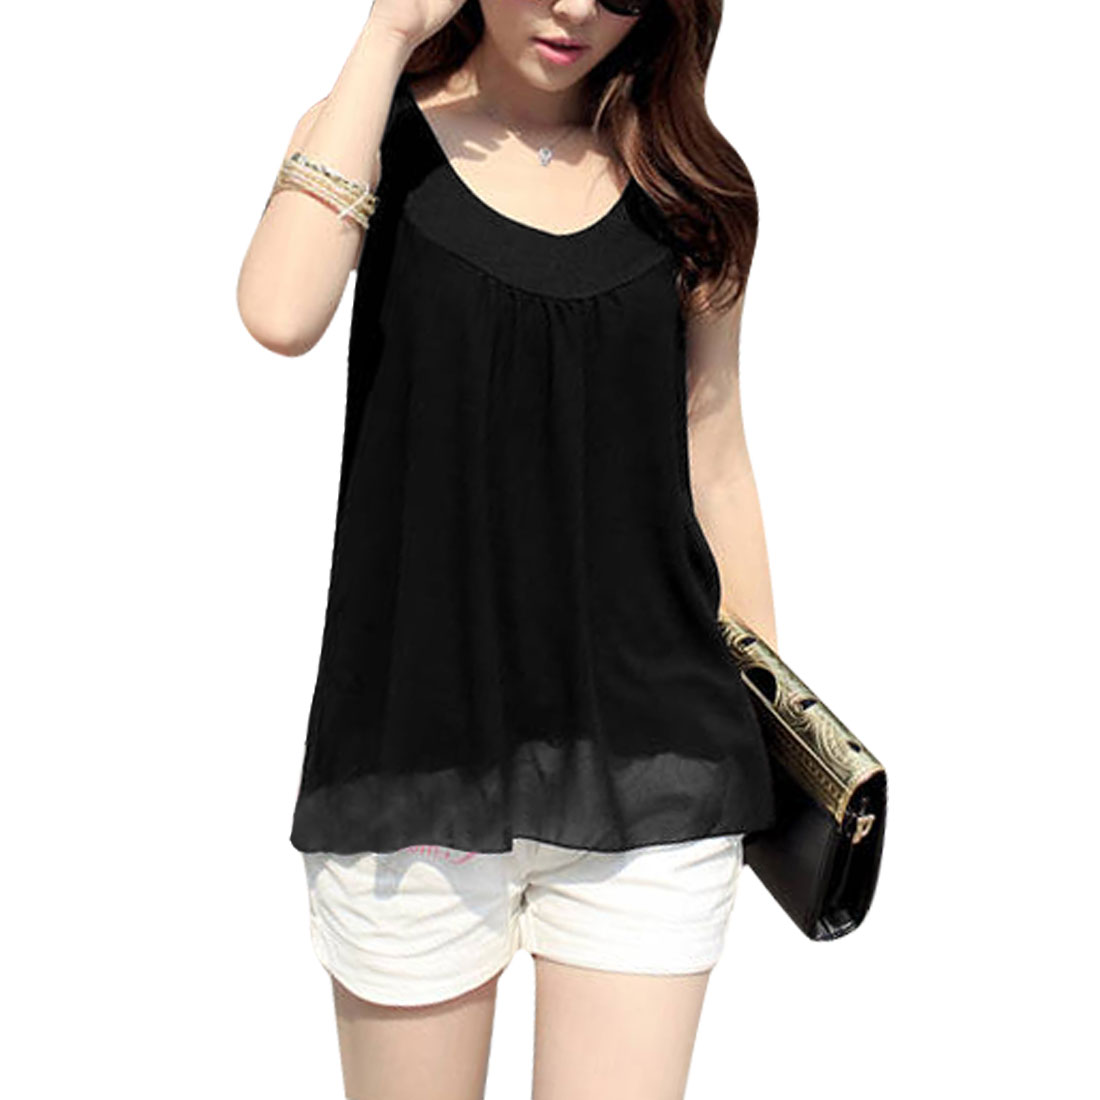 Woman Chic Conrast Color Splice Scoop Neck Sleeveless Black Tank Top S